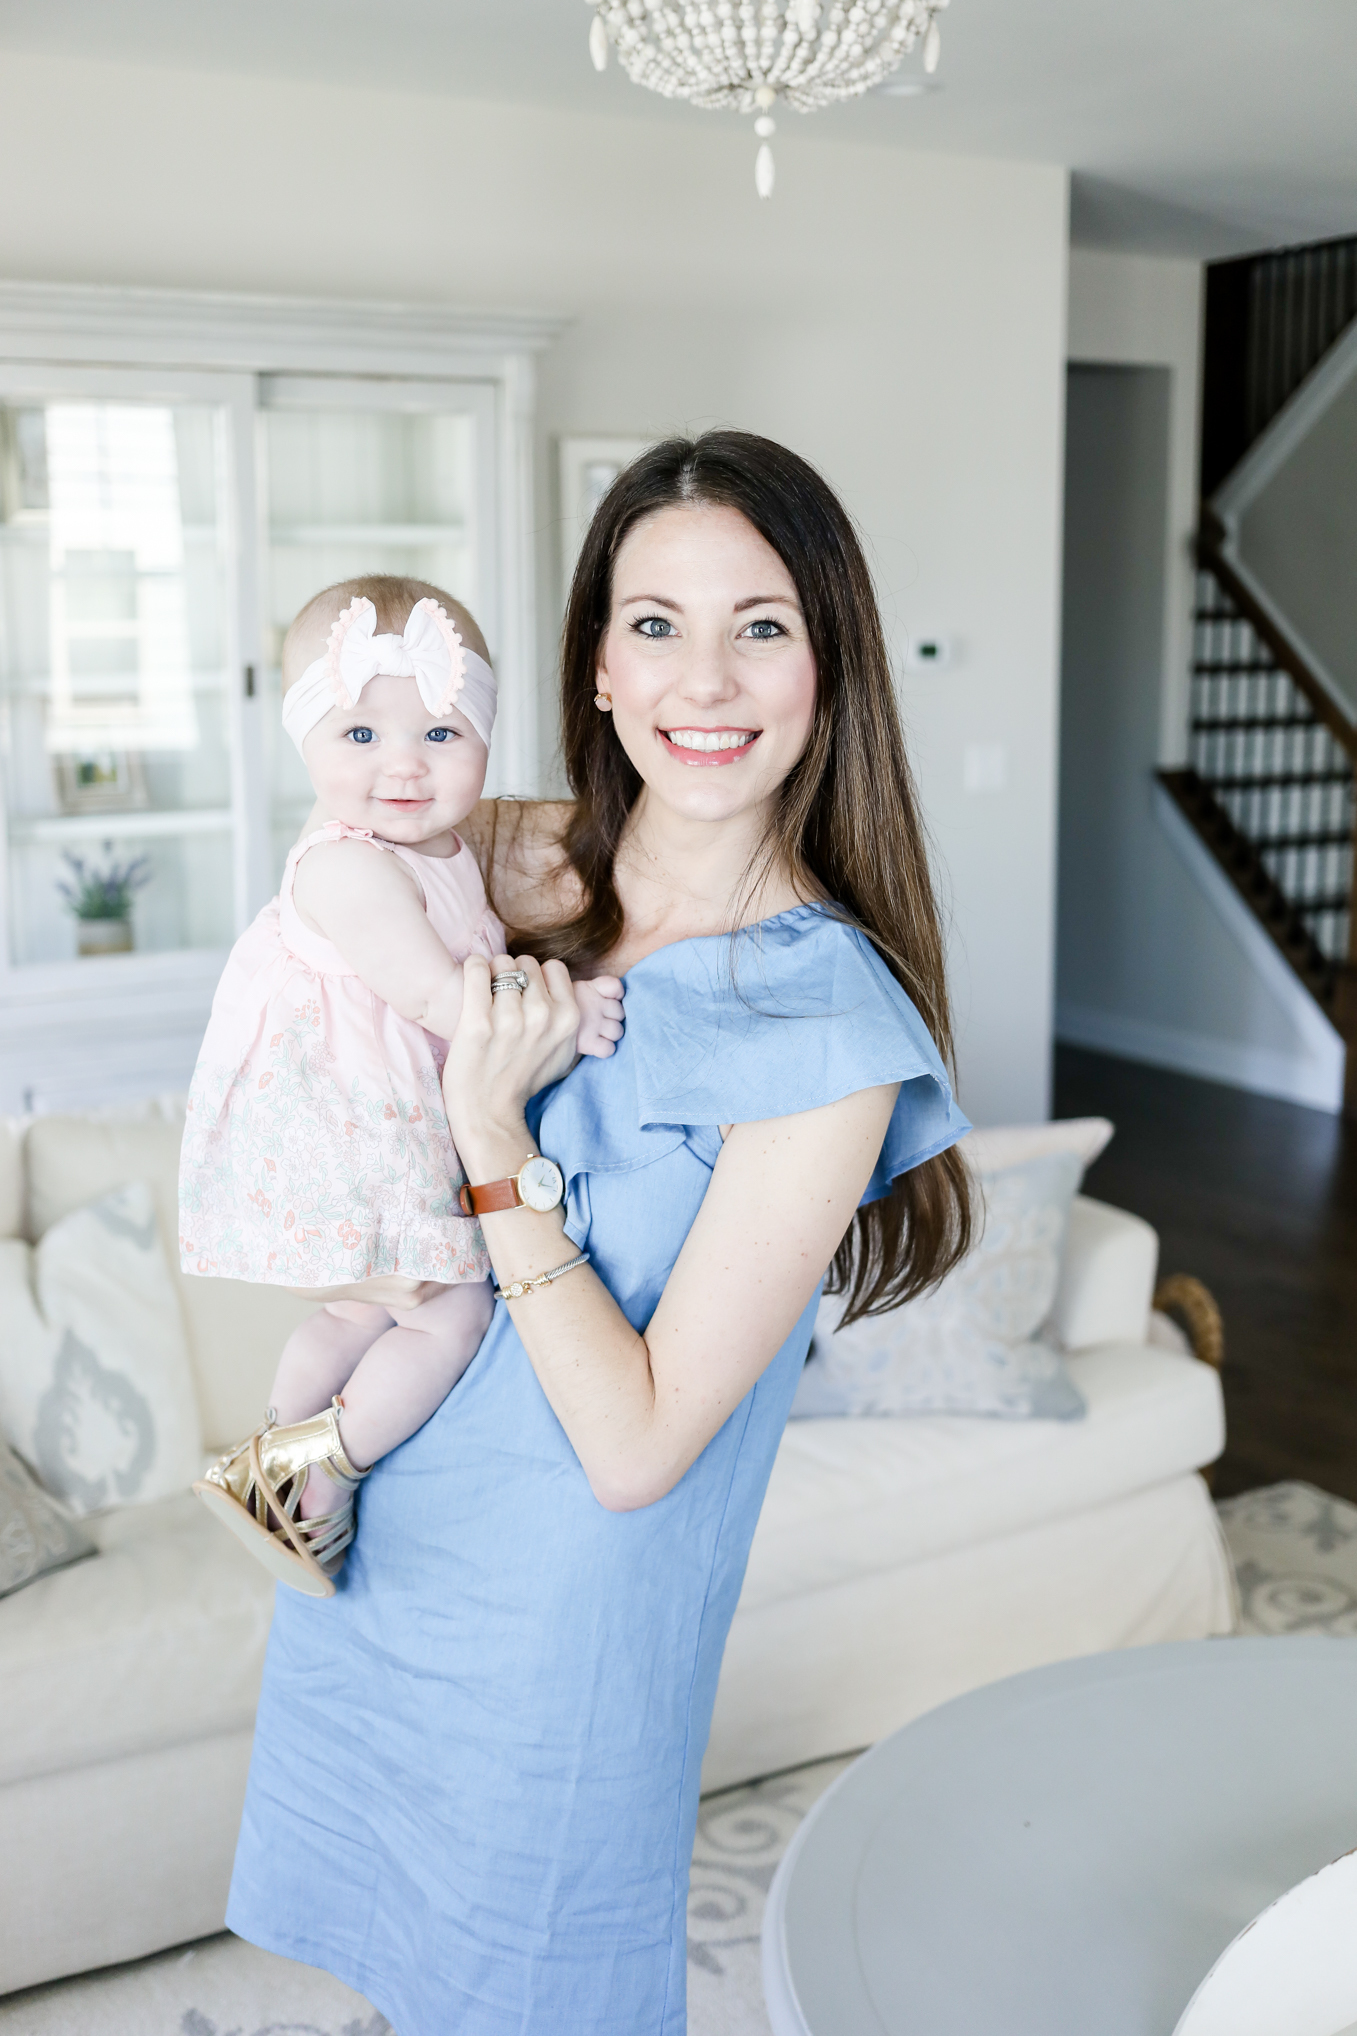 straw clutch | Lifestyle Blogger Elle Bowes shares her mother's day look